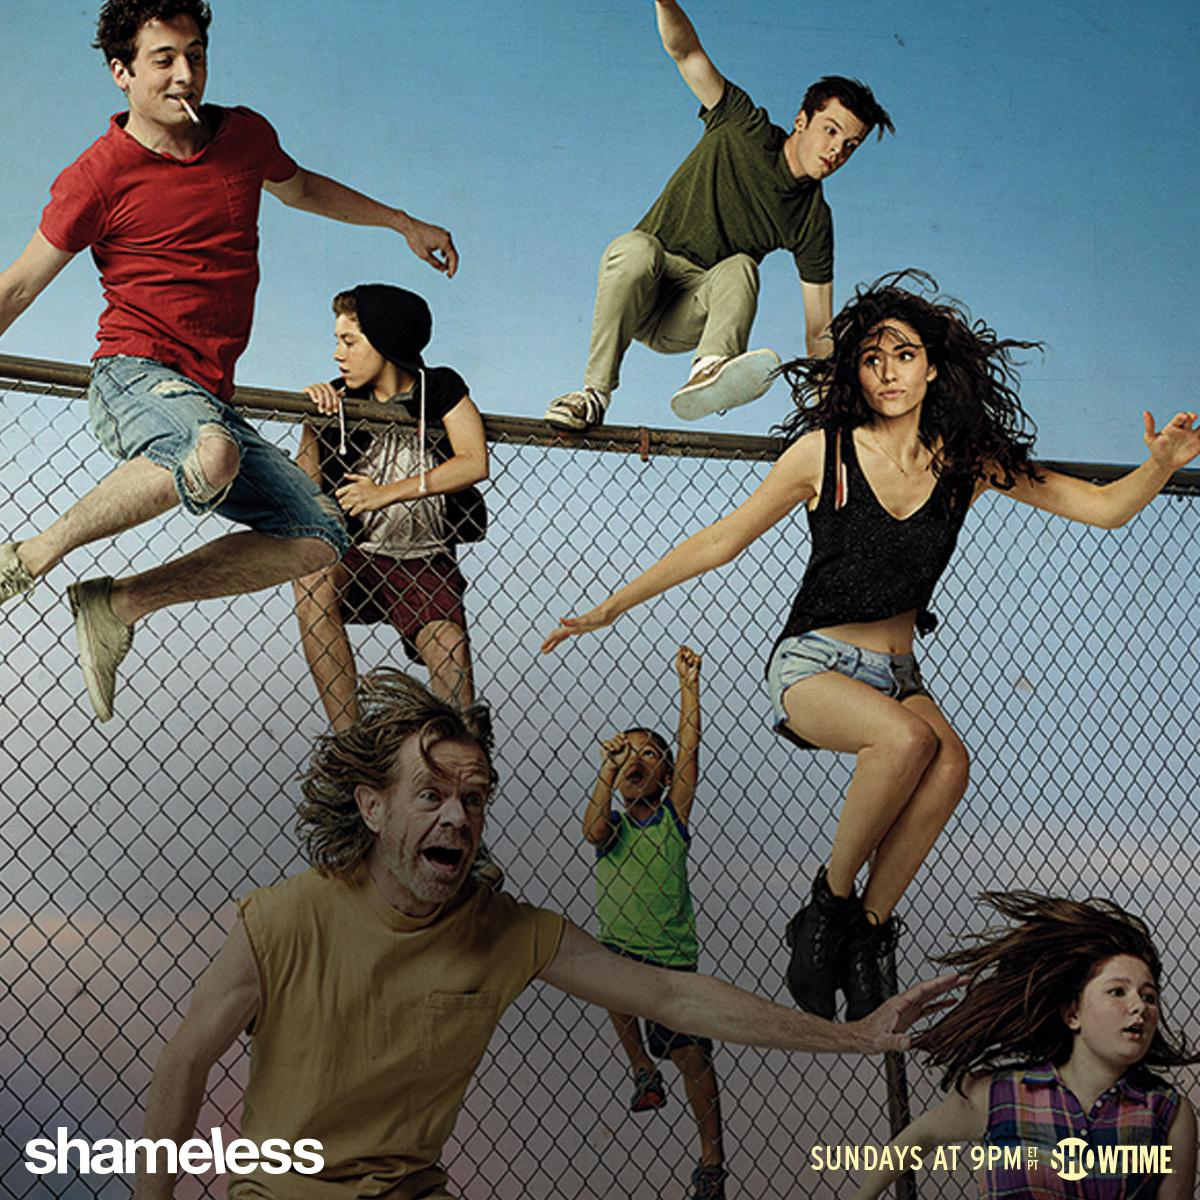 The Gallaghers aren't going anywhere. #Shameless has been picked up for a 6th season! #TeamGallagher #TCA15 http://t.co/O9SKd3I84w